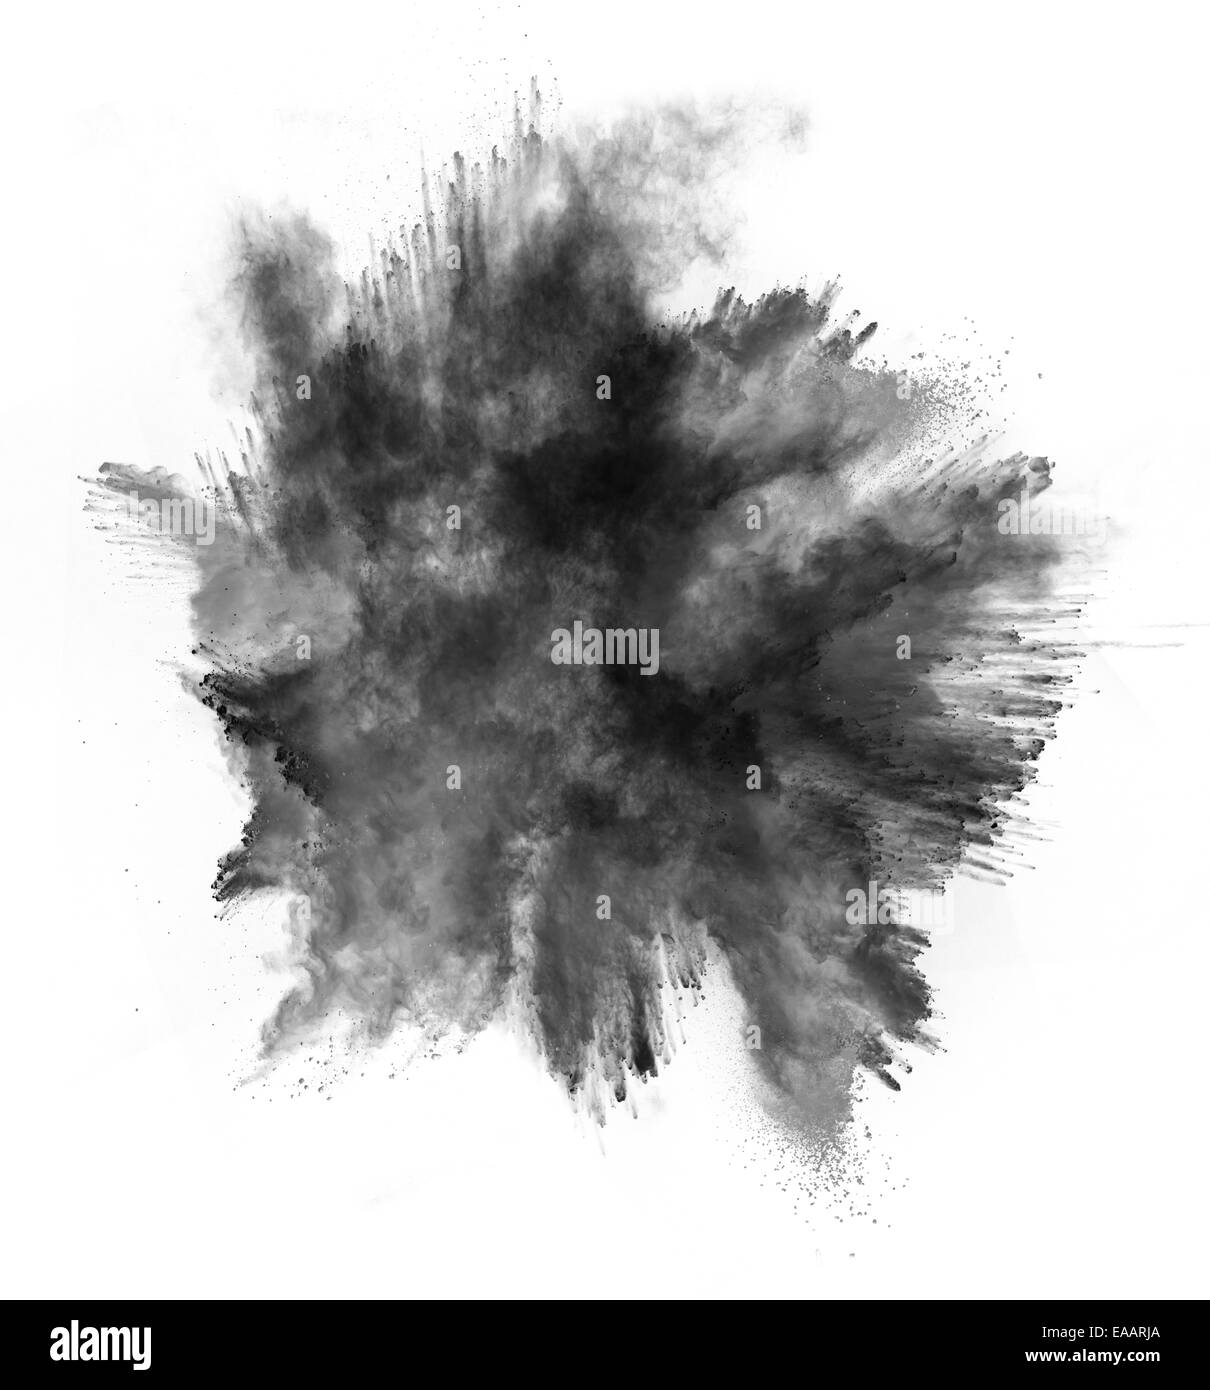 Explosion Black And White